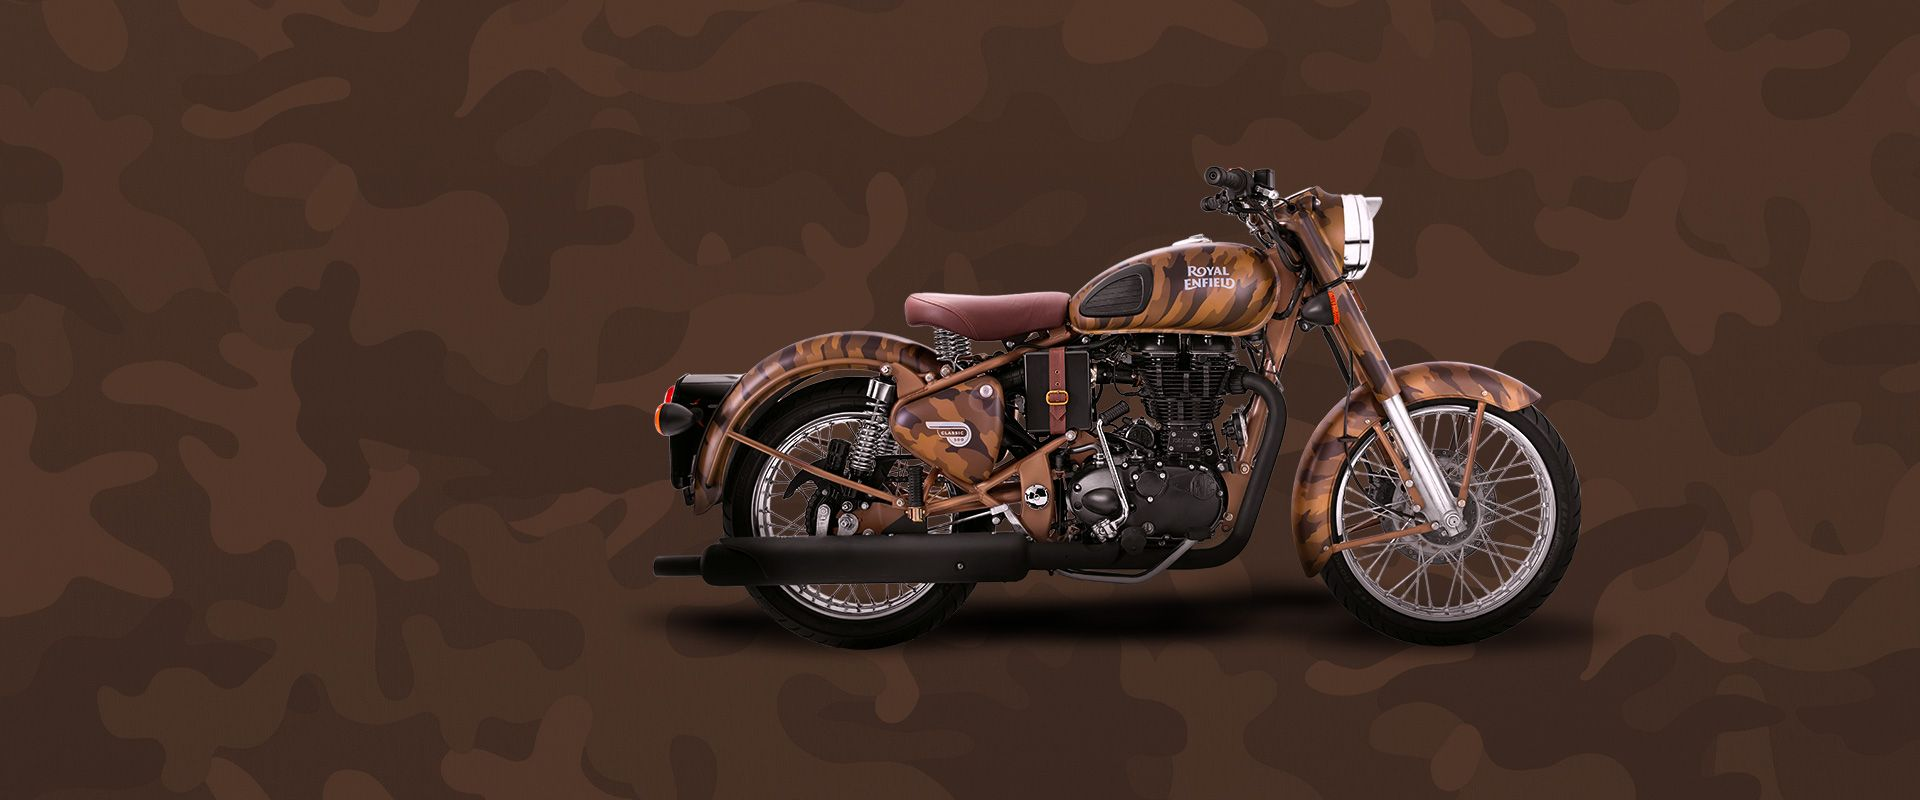 Limited Edition Despatch Motorcycle Bullet bike royal